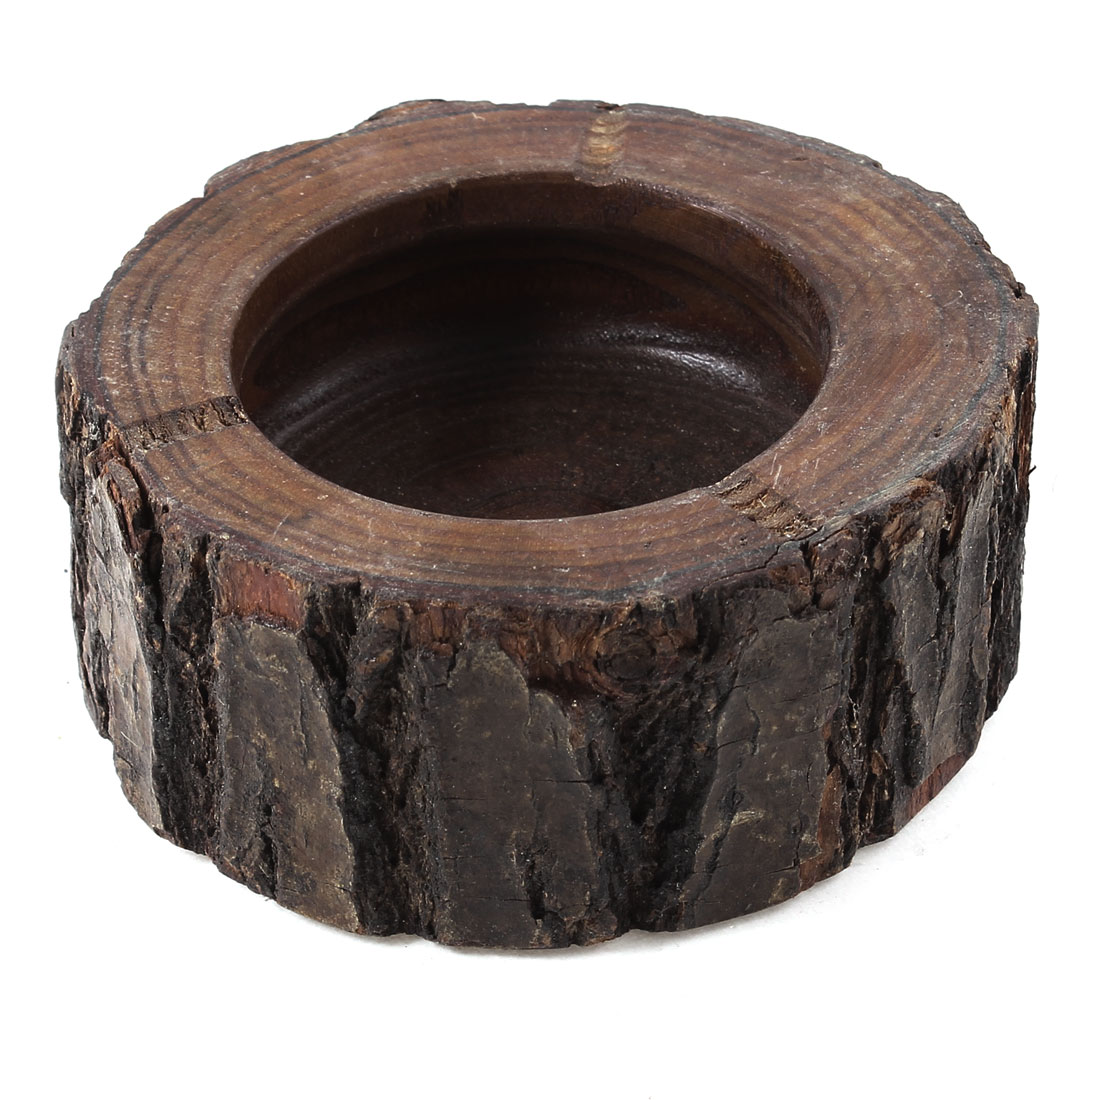 Home Office Wood Color Wooden Tree Trunk Style Cigarette Ash Holder Ashtray